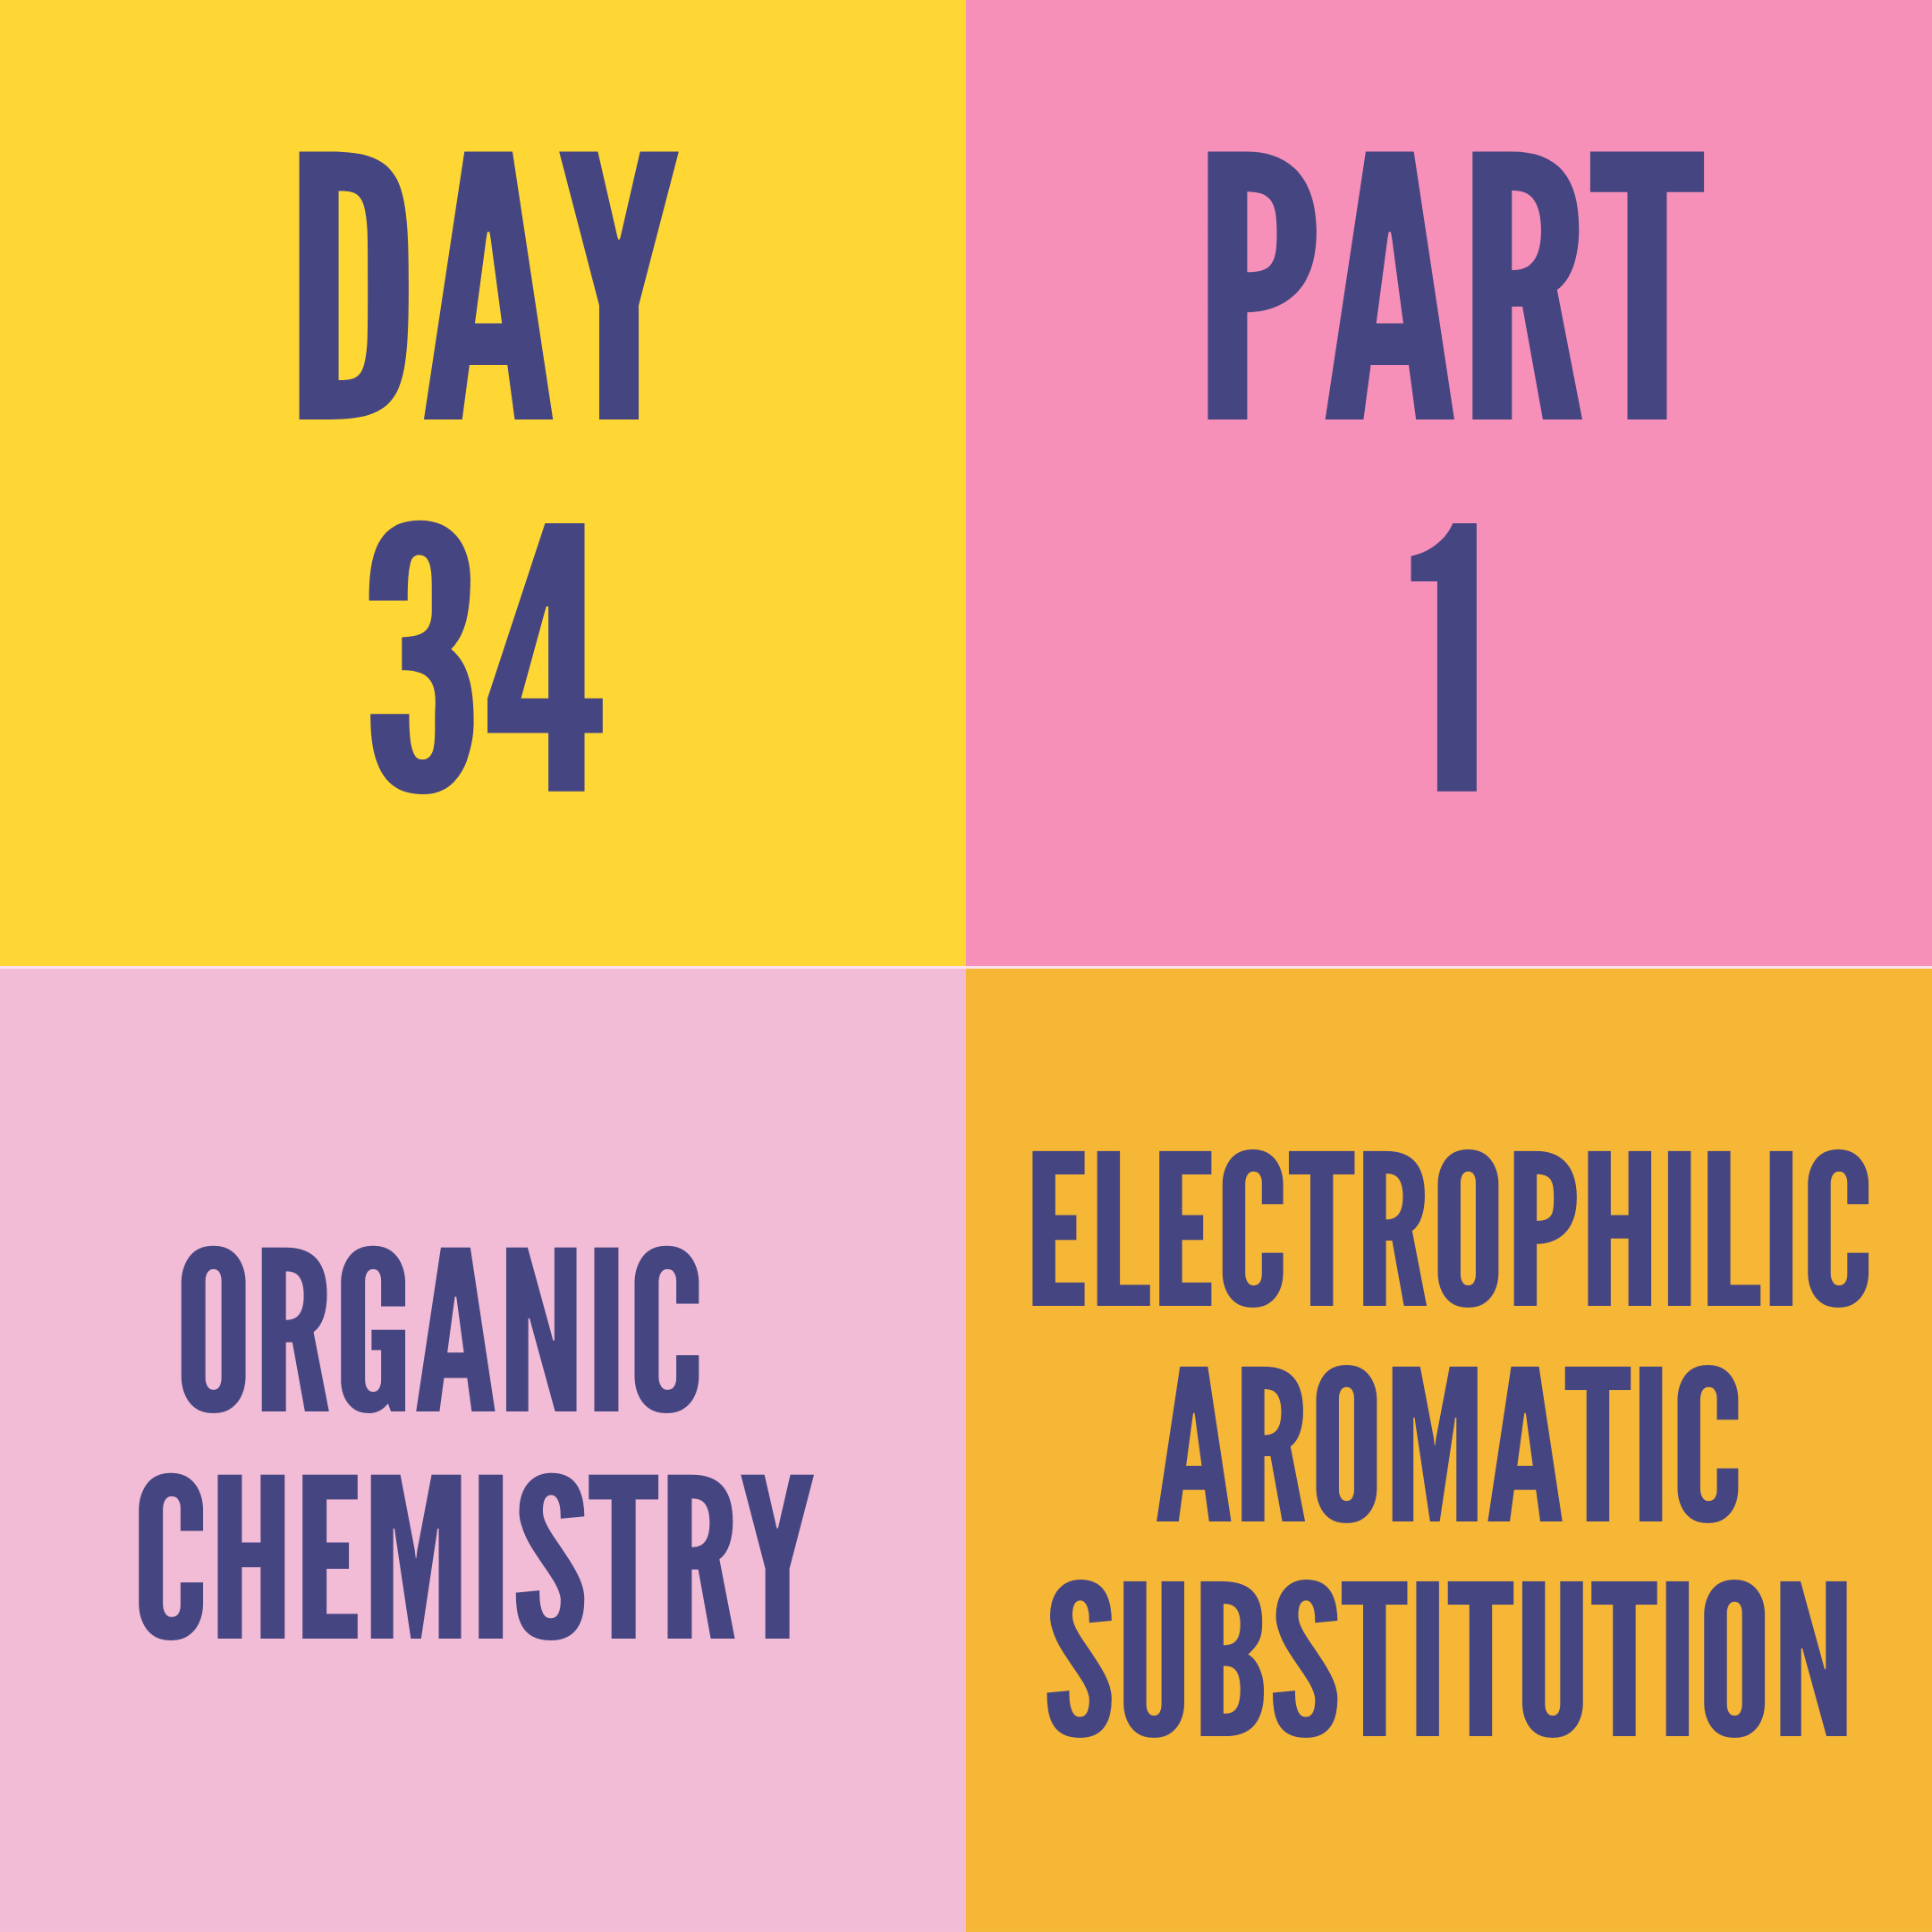 DAY-34 PART-1 ELECTROPHILIC AROMATIC SUBSTITUTION